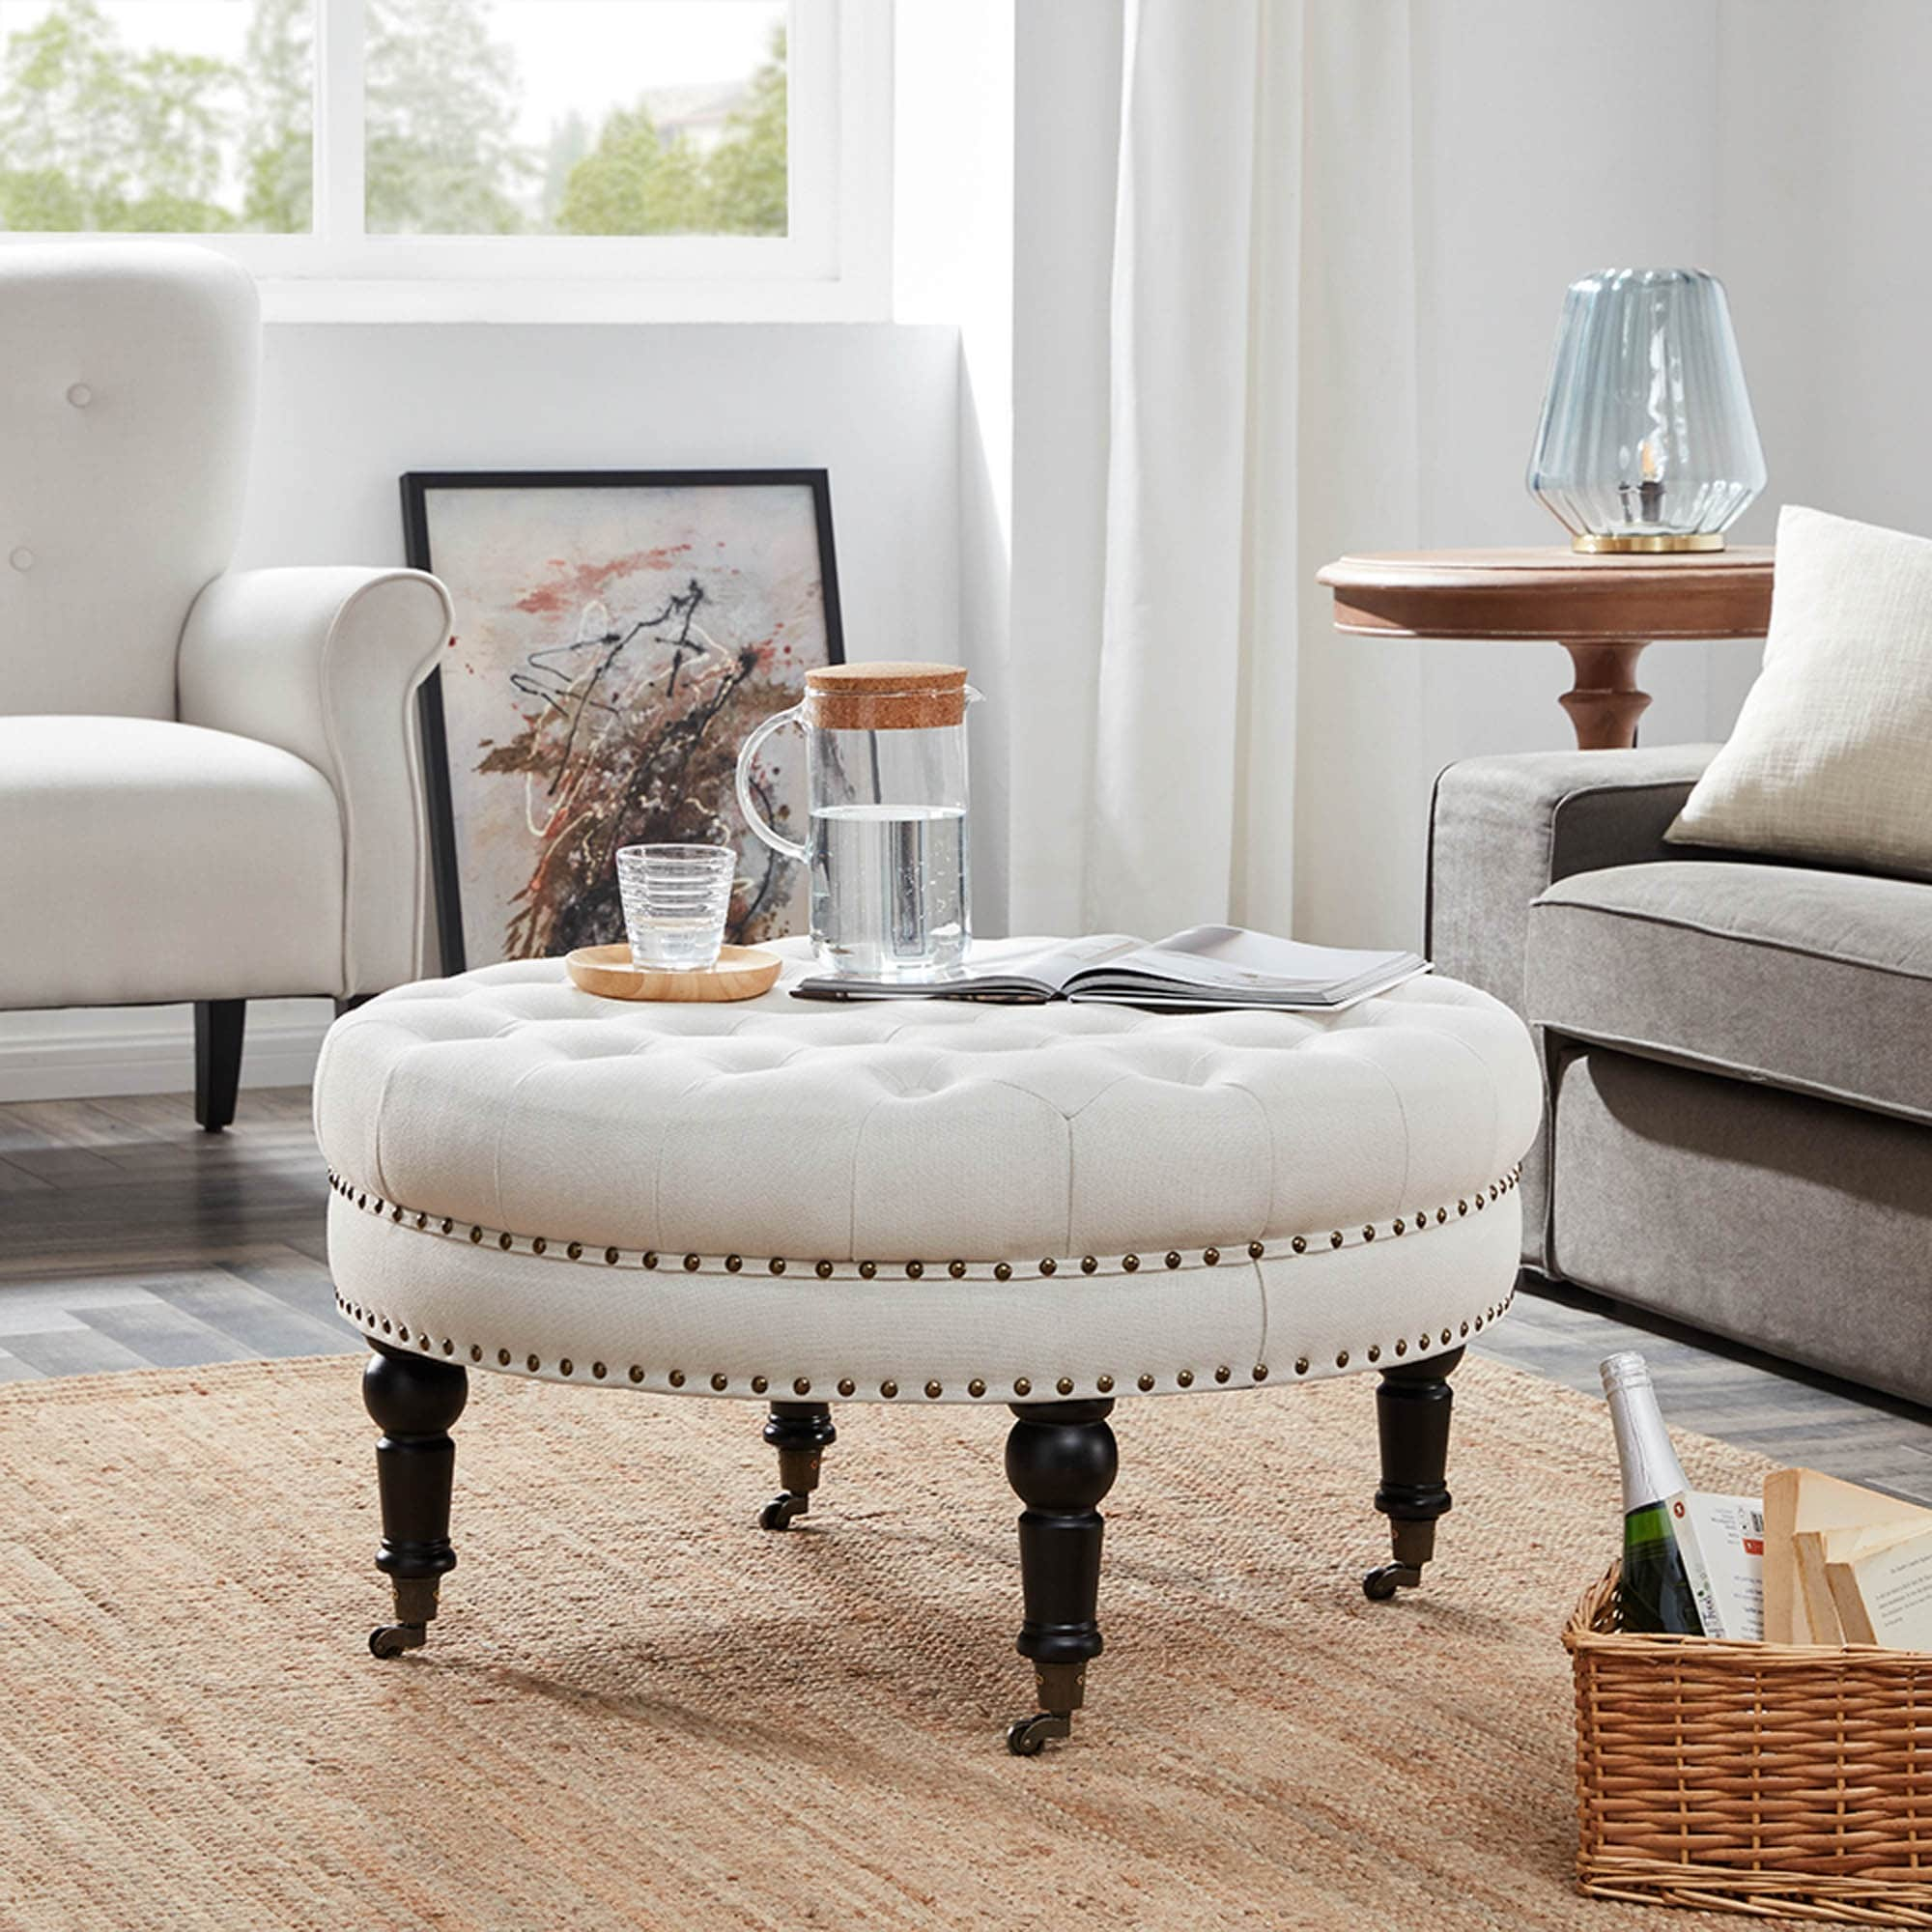 - Shop Belleze Large Ottoman Cushion Round Tufted Linen Bench W/ Caster Beige  - Overstock - 17833240